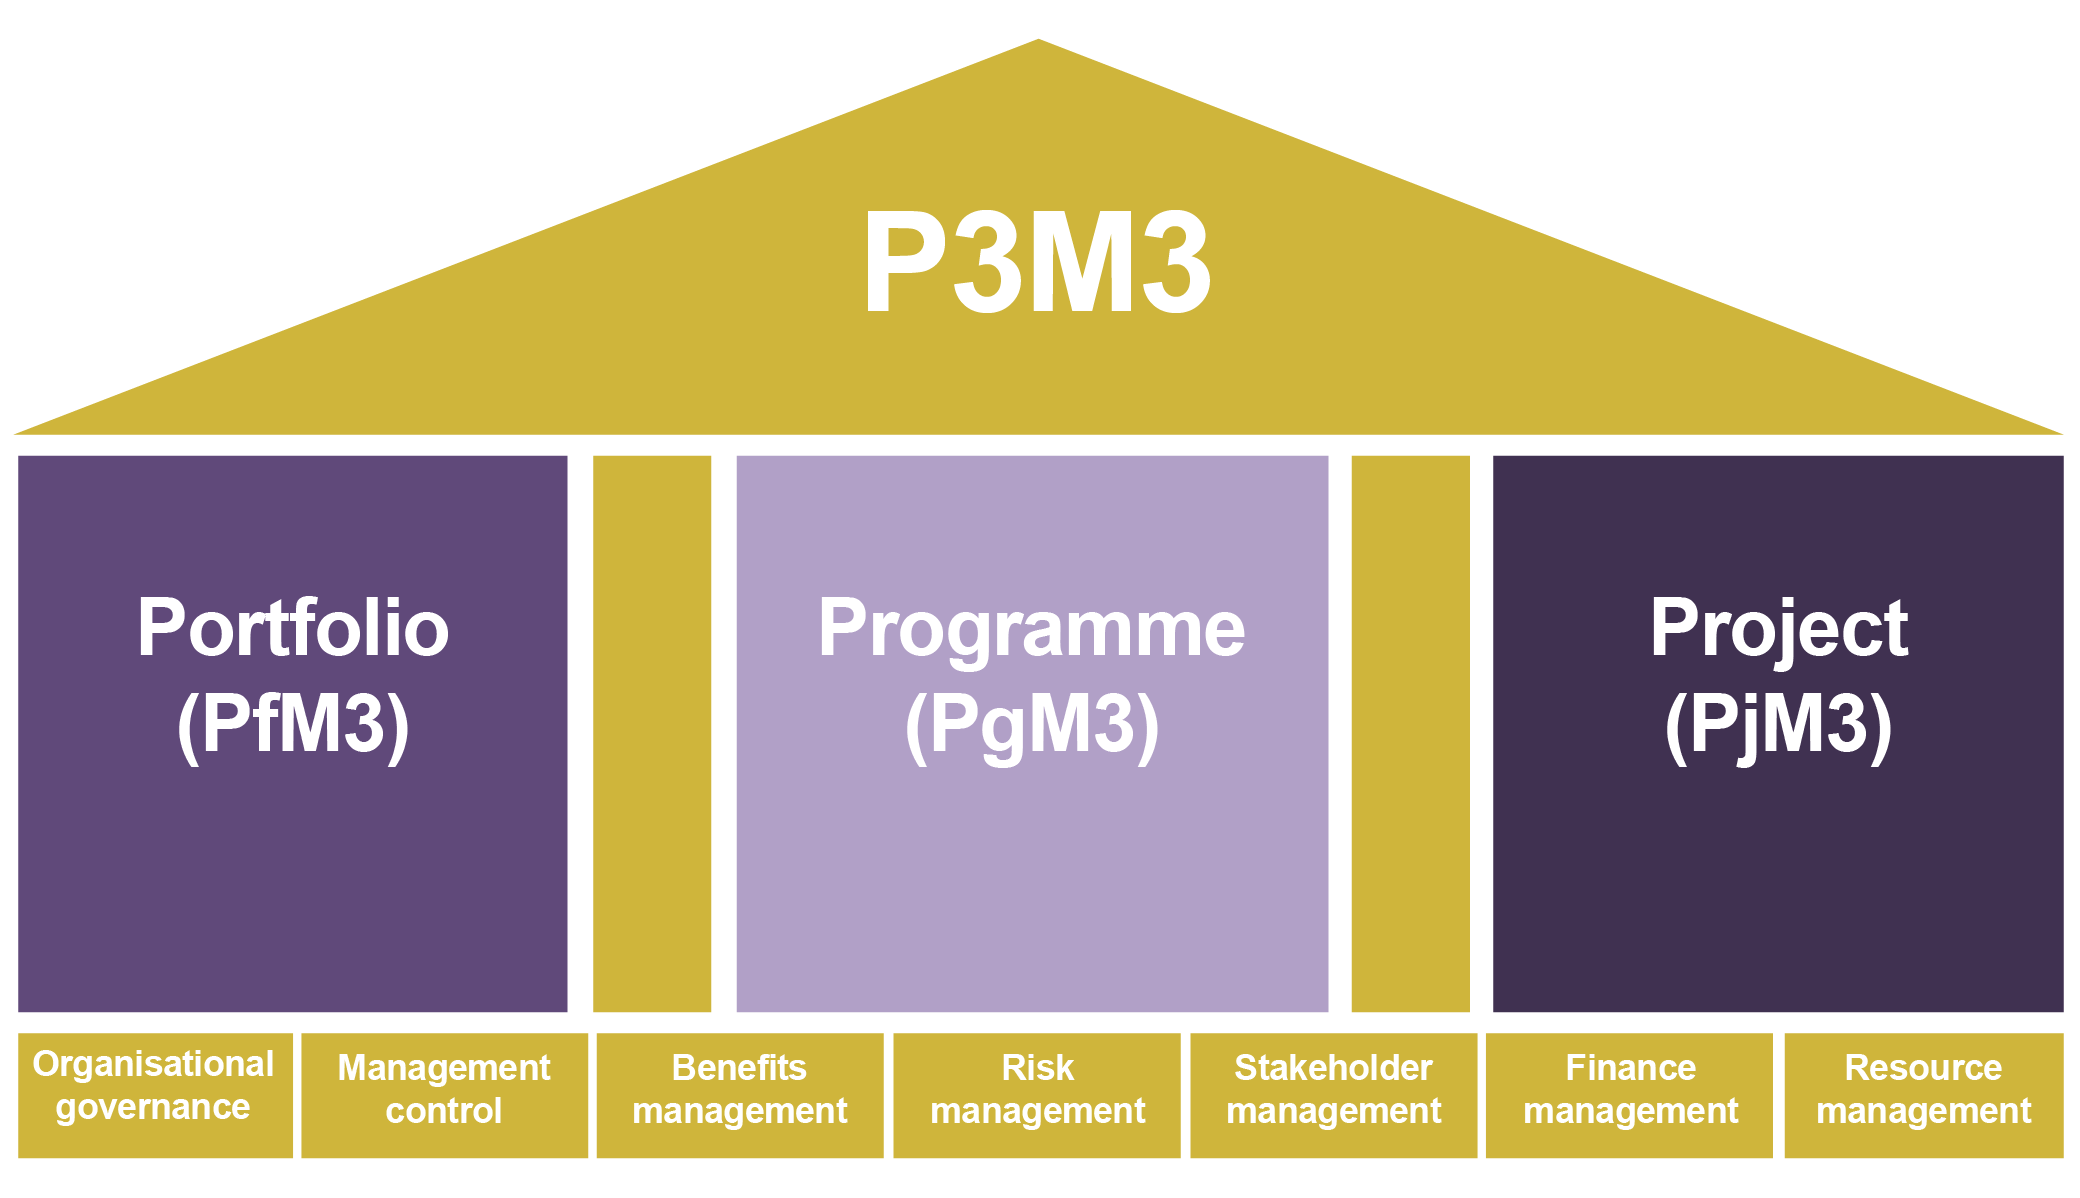 AXELOS Consulting Partner – P3M3® Assessments